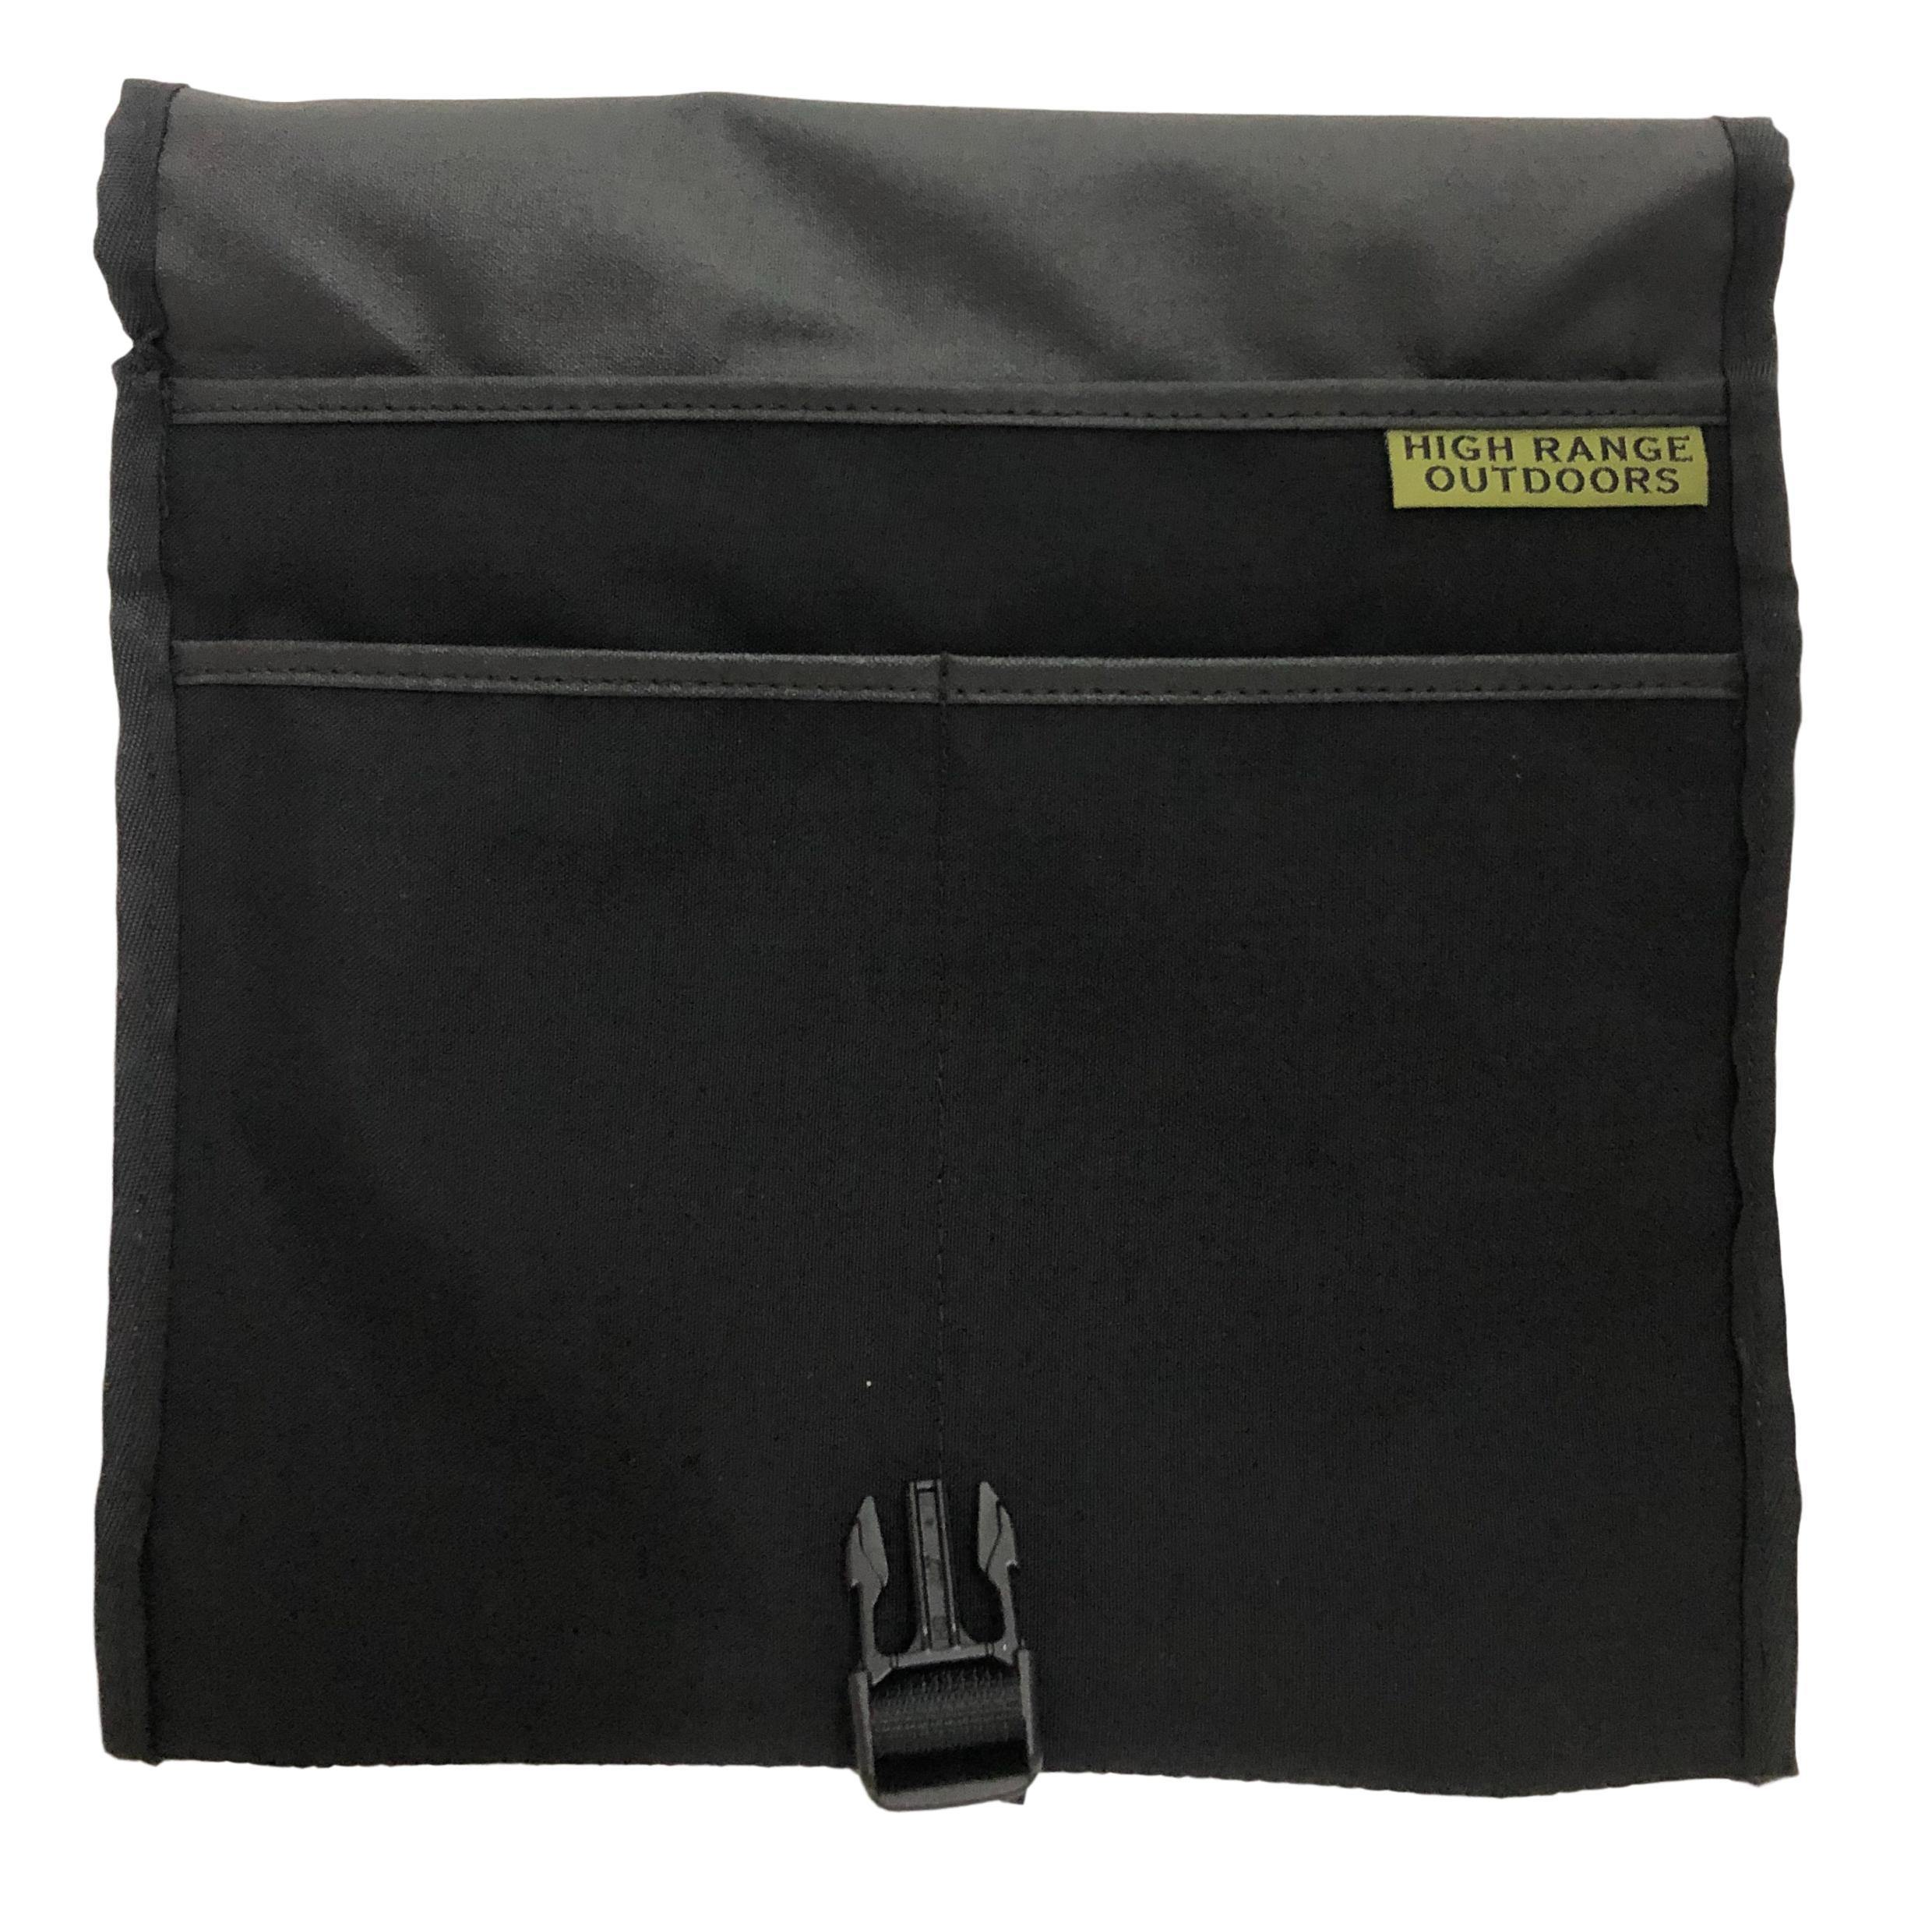 High Range Outdoors Satch Man Bag Black pockets for admin EDC Urban Adventures